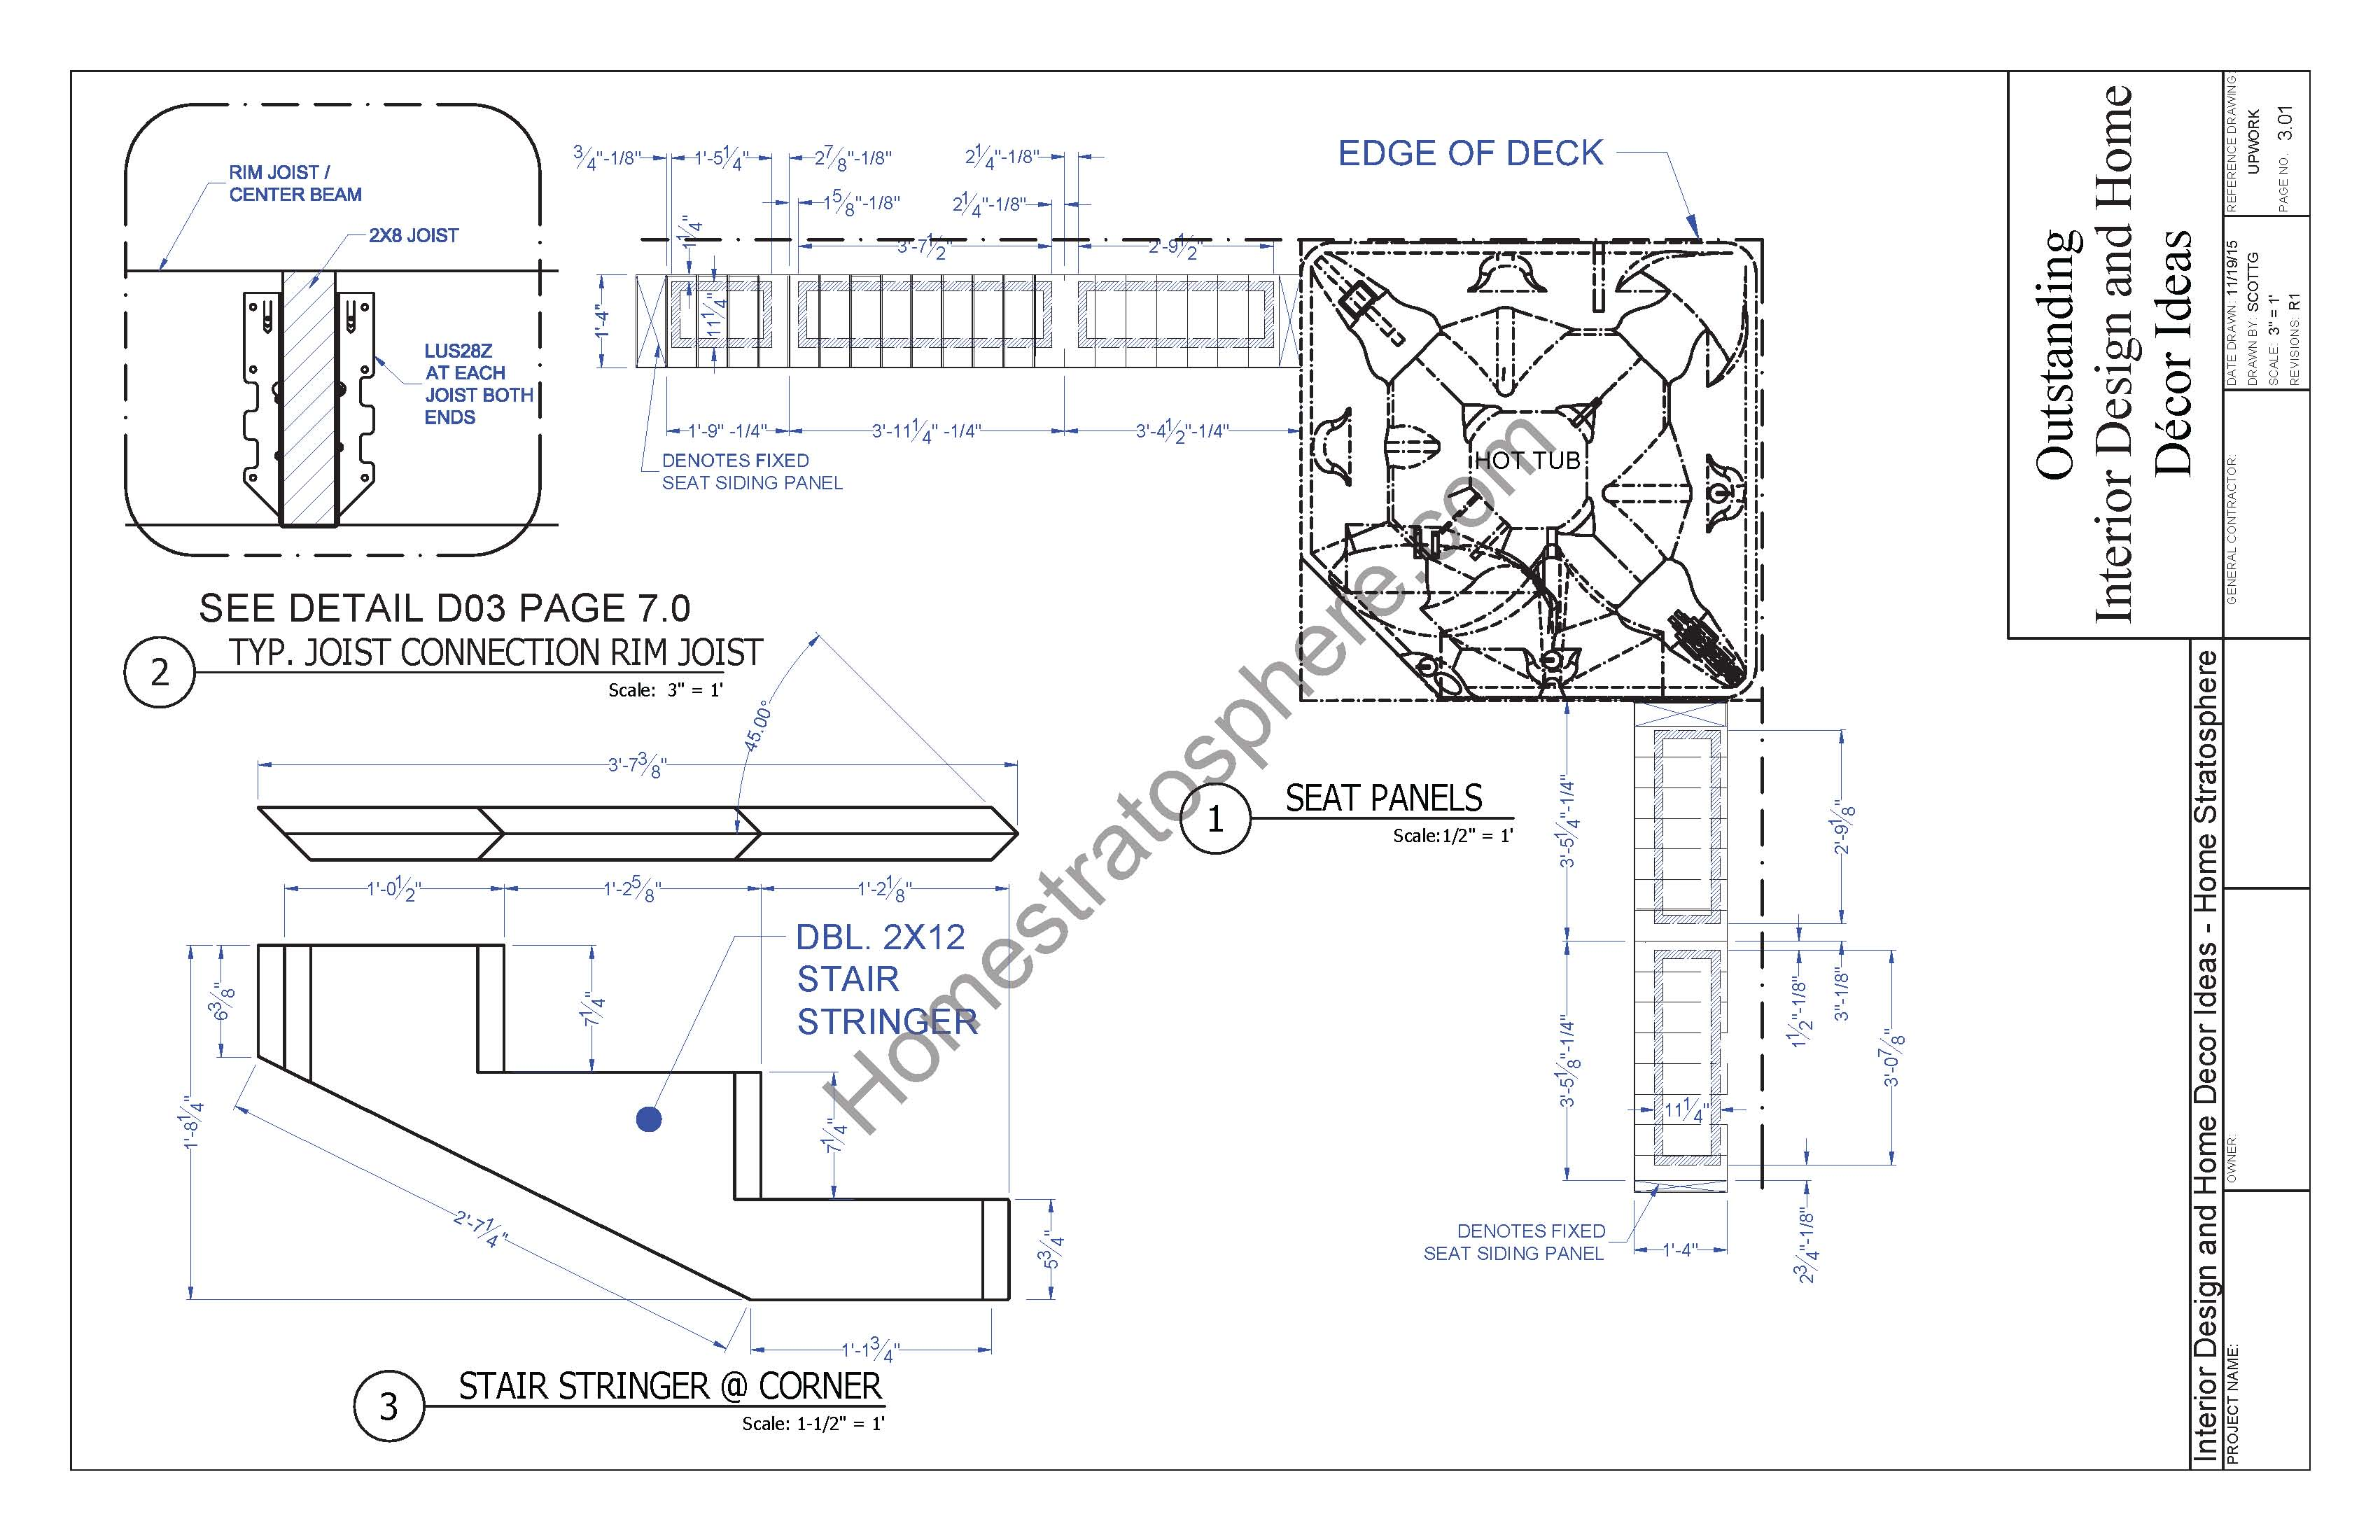 Hot tub deck design plan free pdf download for Free blueprint designer